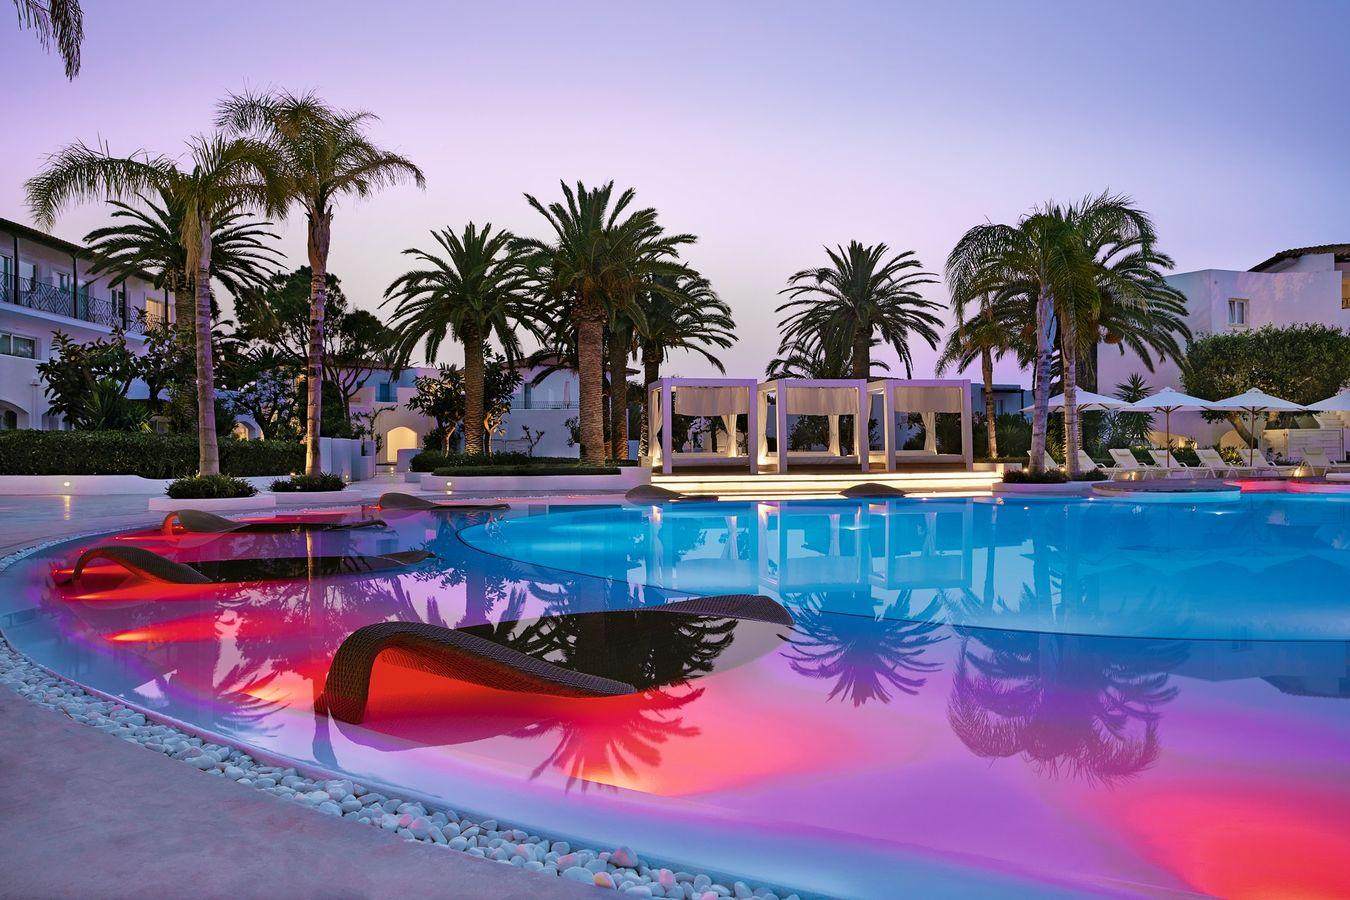 web_01-unique-illuminated-pool-with-leaf-sun-beds